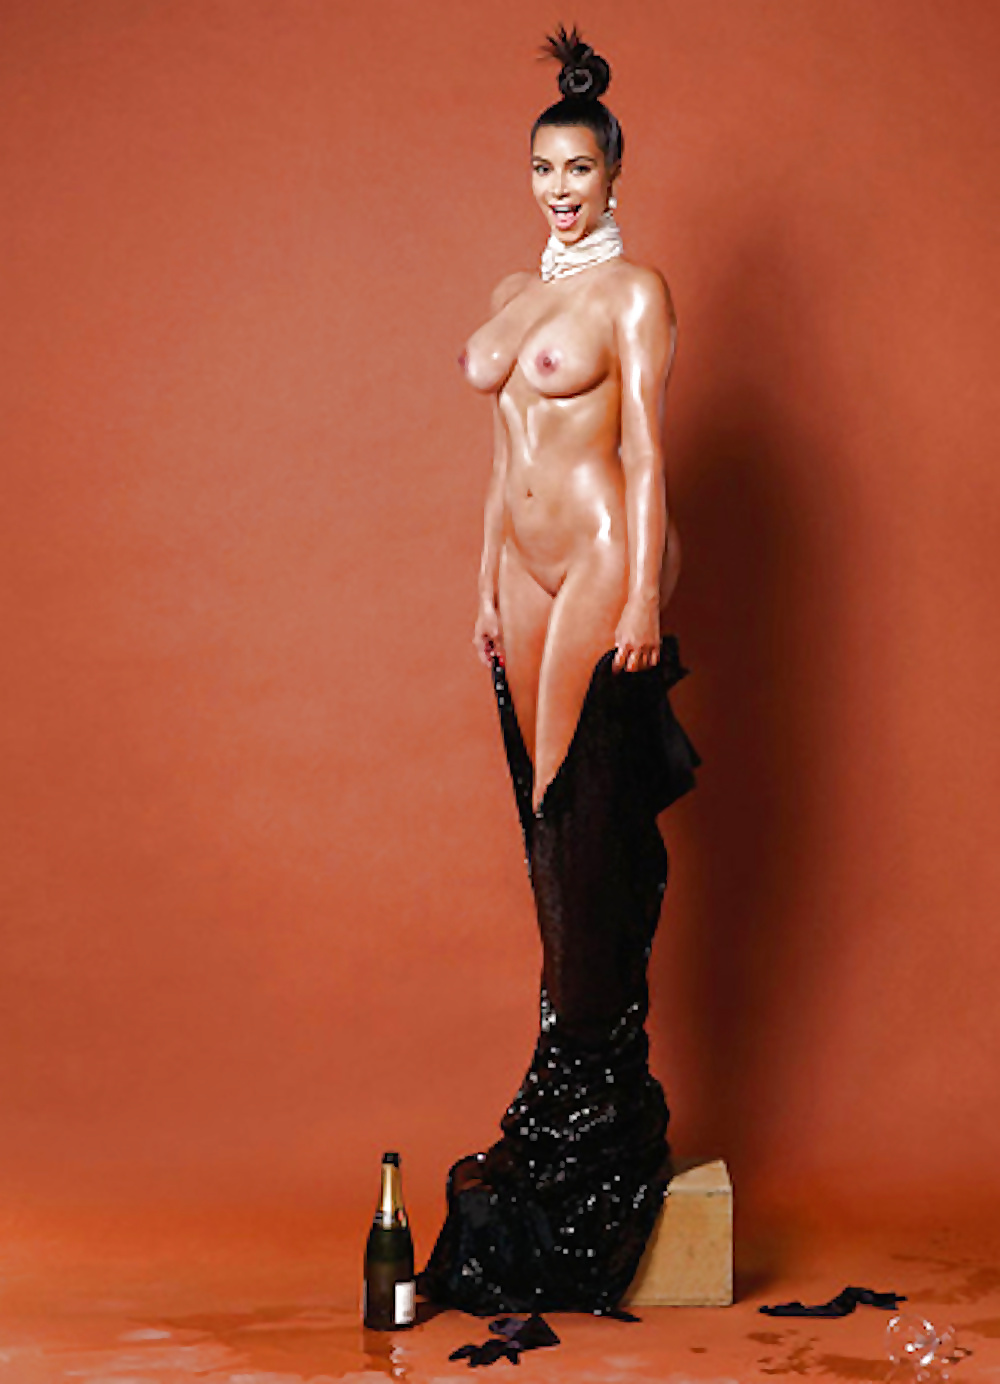 Free pictures of kim kardashian naked — img 1